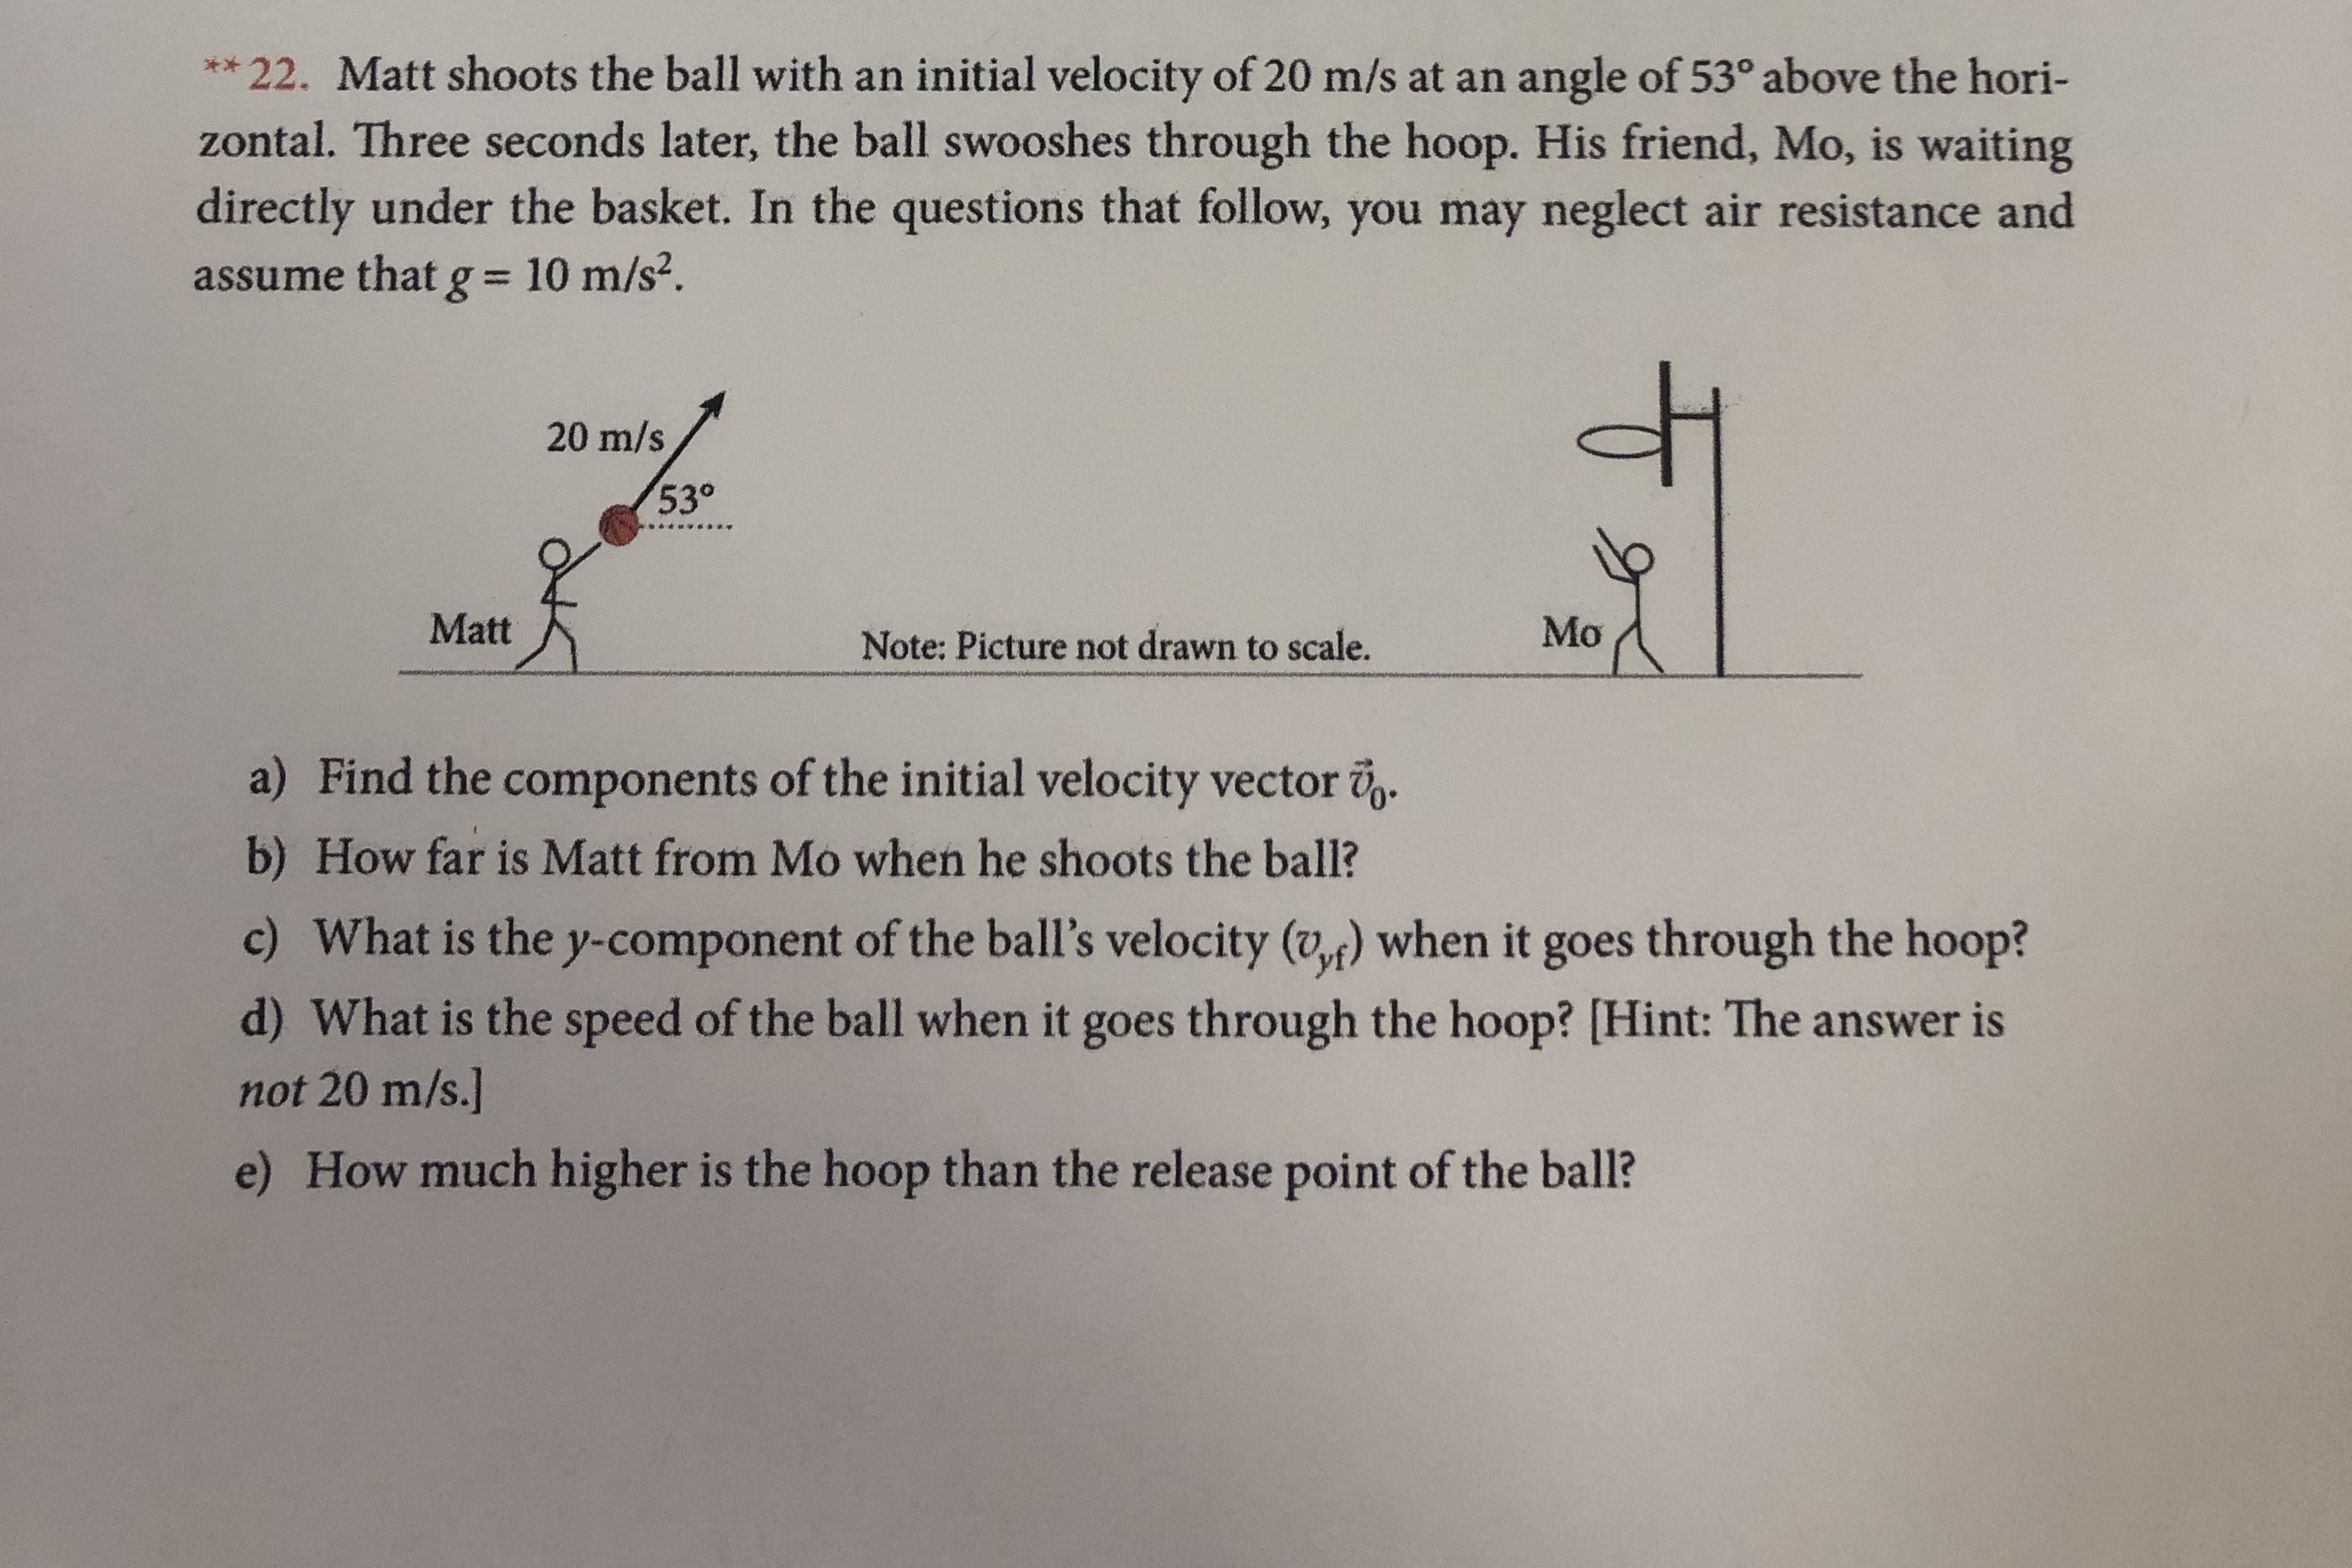 22. Matt shoots the ball with an initial velocity of 20 m/s at an zontal. Three seconds later, the ball swooshes through the hoop. His friend, Mo, is waiting directly under the basket. In the questions that follow, you may neglect air resistance and ** angle of 53° above the hori- assume that g = 10 m/s2. 20 m/s 530 Matt Mo Note: Picture not drawn to scale. a) Find the components of the initial velocity vector b) How far is Matt from Mo when he shoots the ball? c) What is the y-component of the ball's velocity (v) when it goes through the hoop? d) What is the speed of the ball when it goes through the hoop? [Hint: The answer is not 20 m/s.] e) How much higher is the hoop than the release point of the ball?